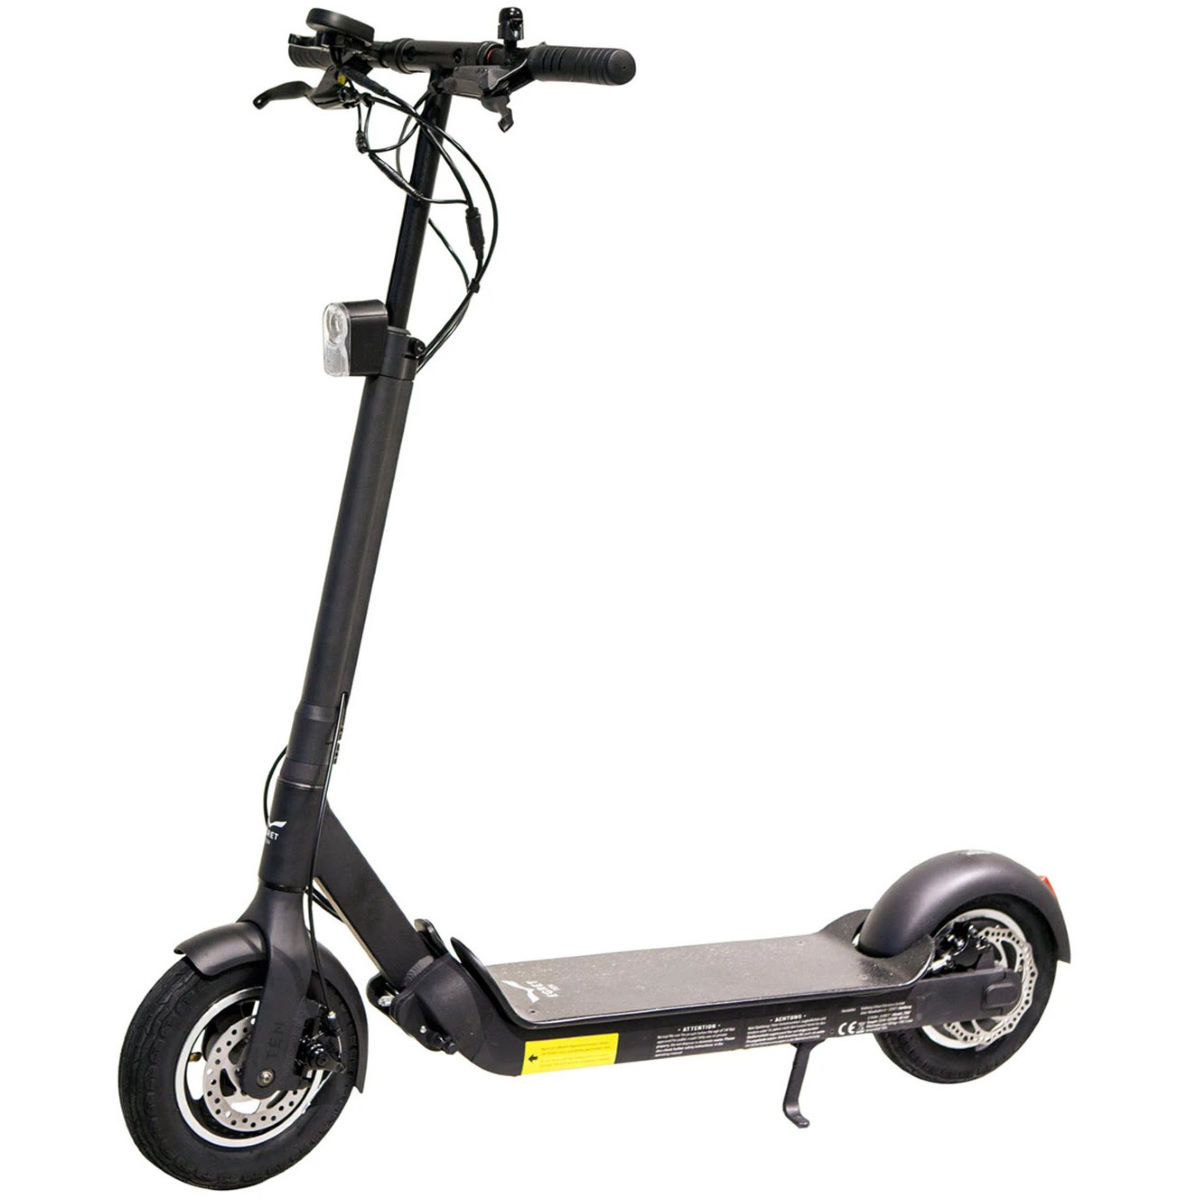 Walberg Walberg EGRET-TEN V3X Electric Scooter   Electric Scooters